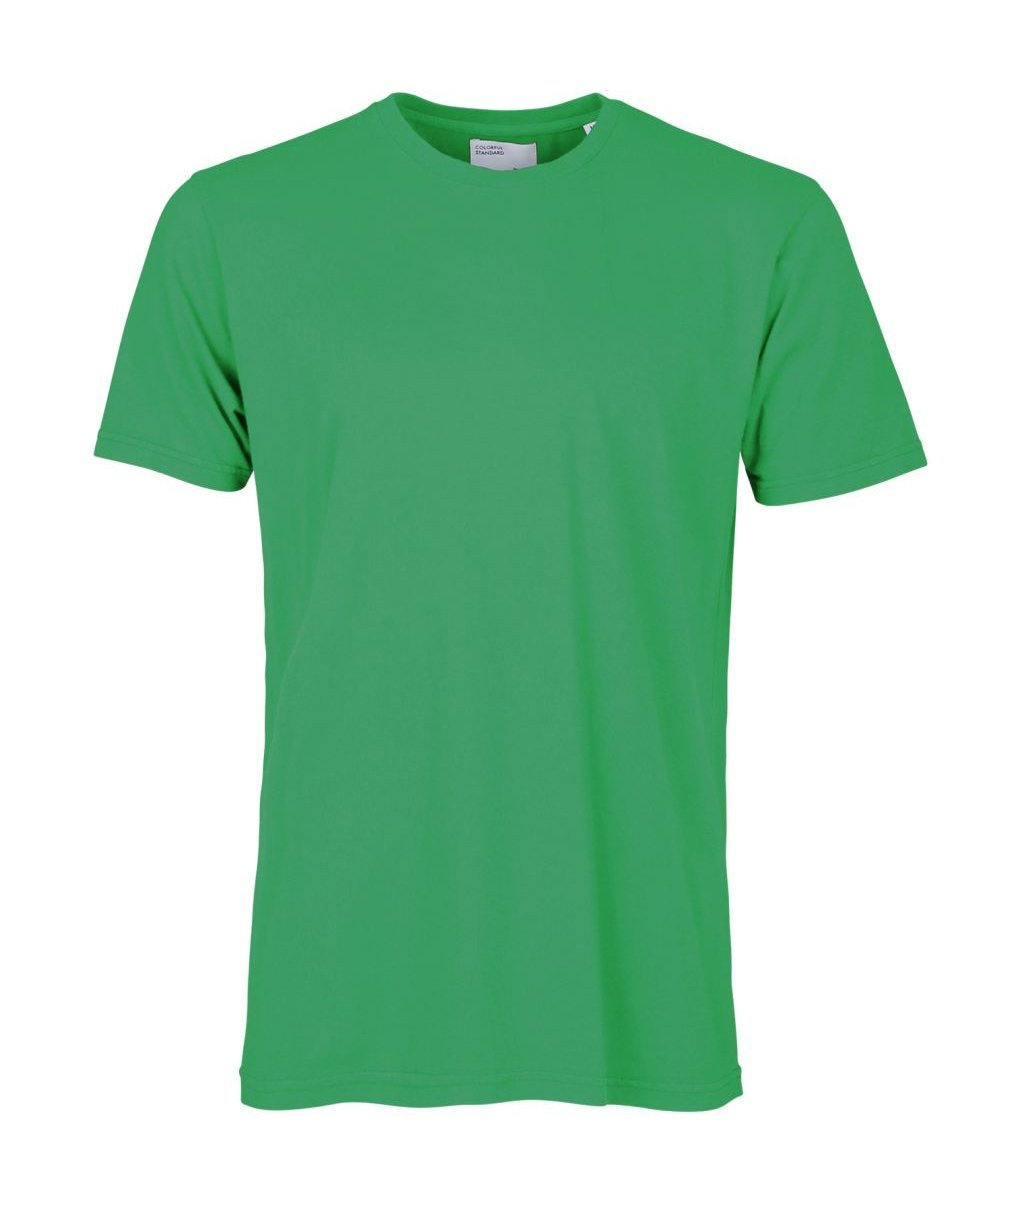 Colorful Standard COLORFUL STANDARD classic organic cotton tee shirt round neck kelly green (unisex)